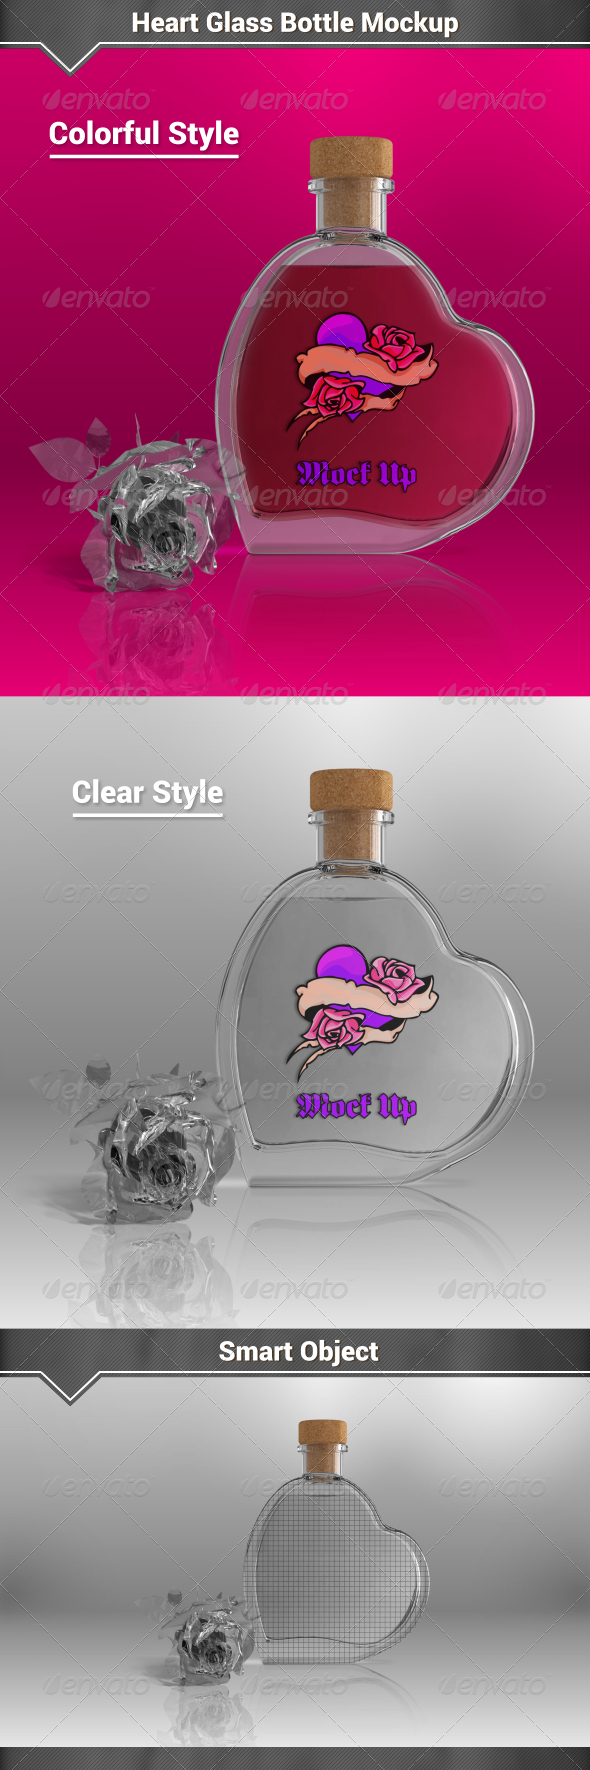 GraphicRiver Heart Glass Bottle Mockup 8143167